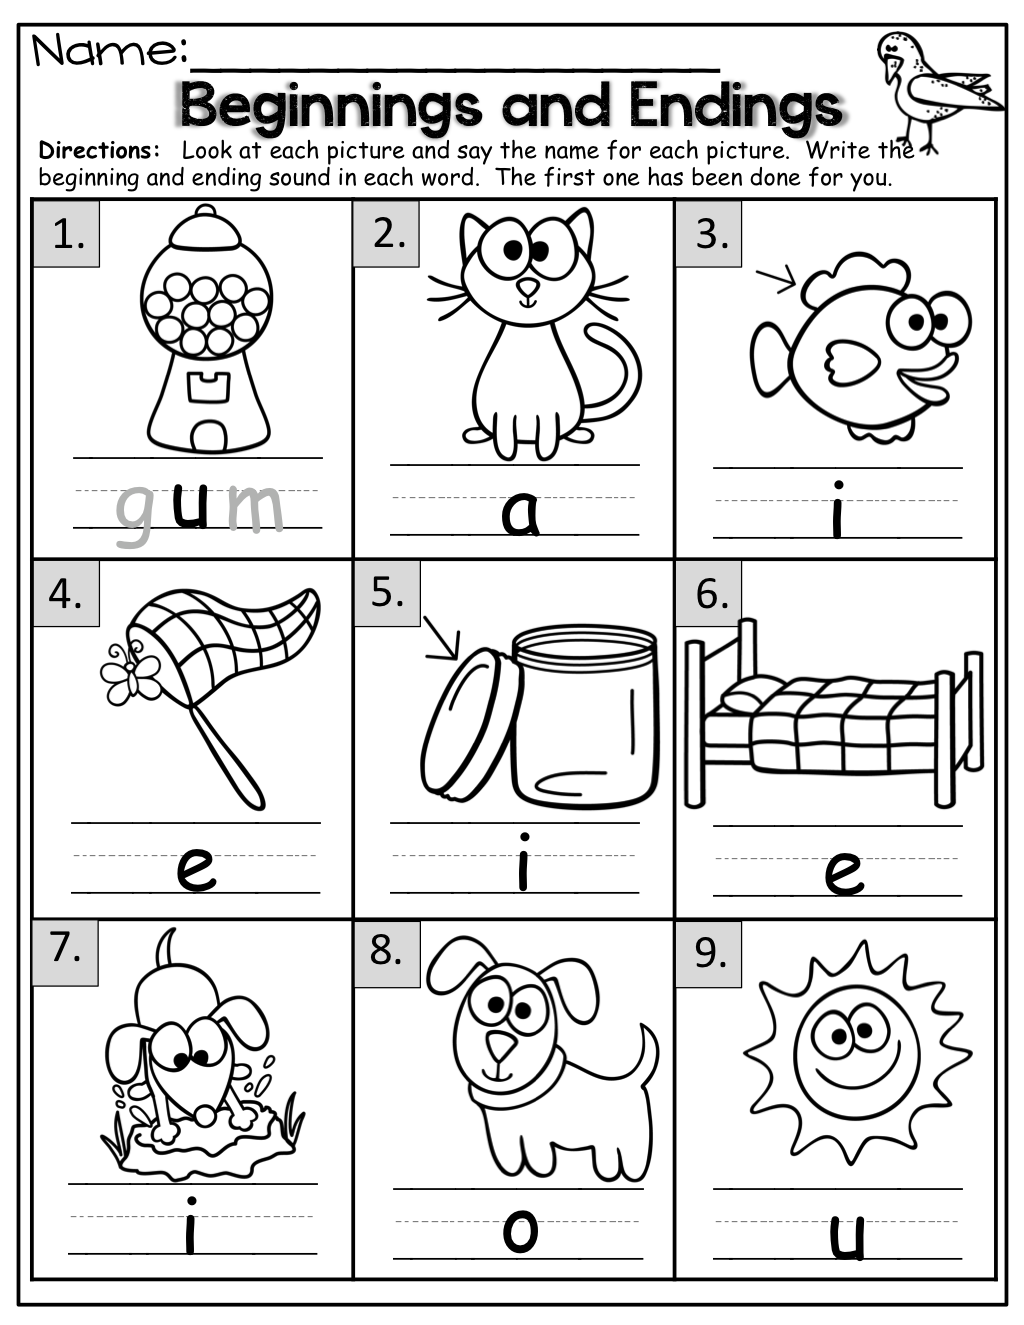 Worksheets Beginning And Ending Sounds Worksheets beginning and ending sounds kinderland collaborative pinterest sounds